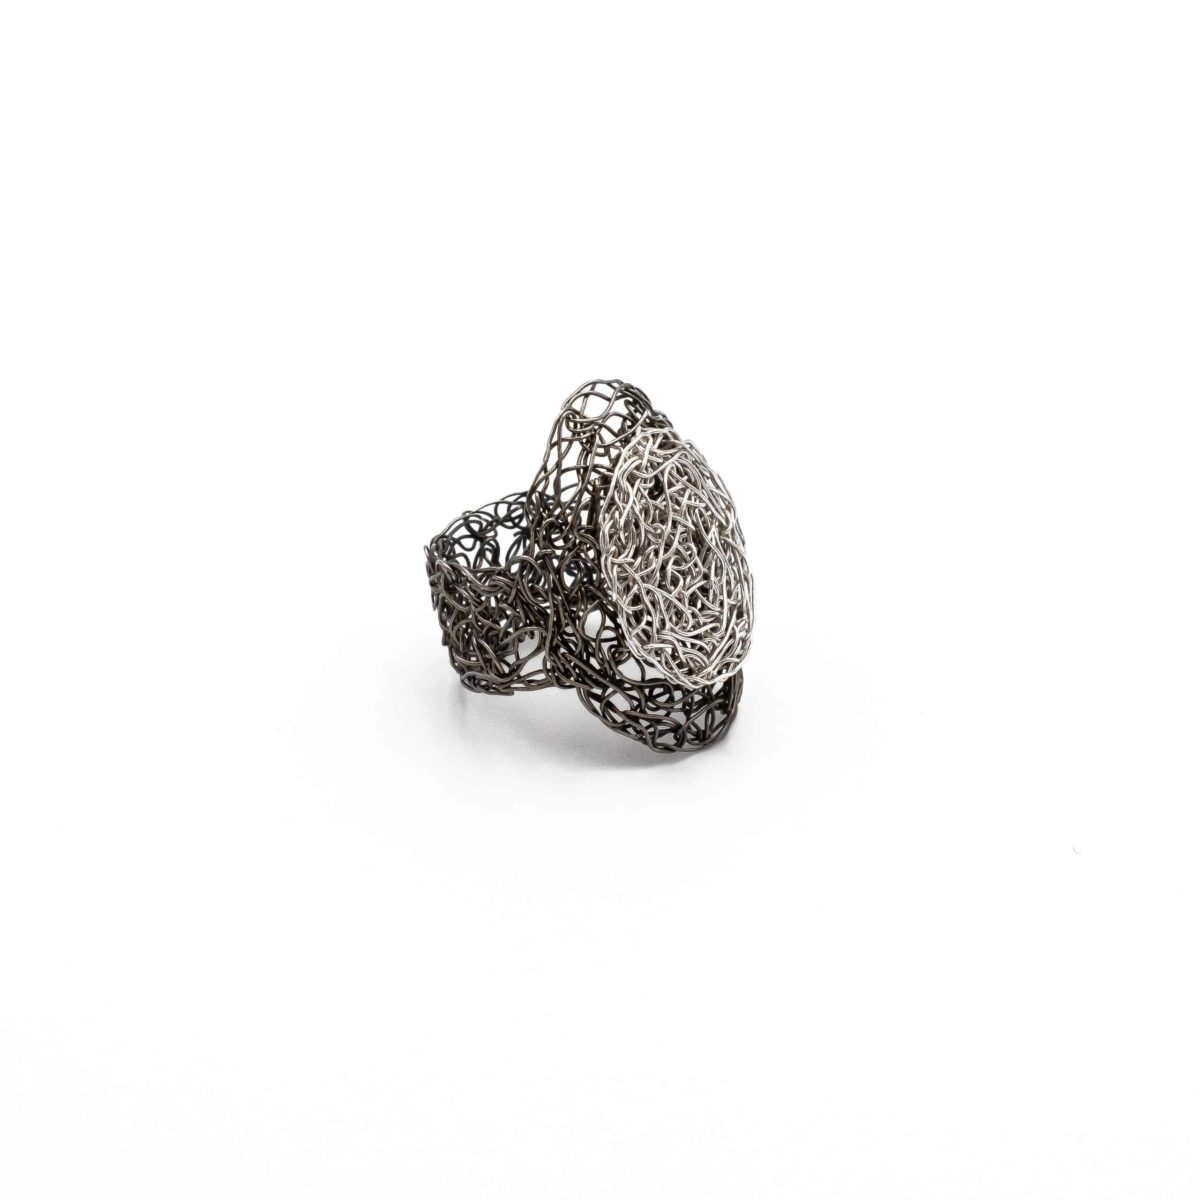 view of adjustable ring in silver